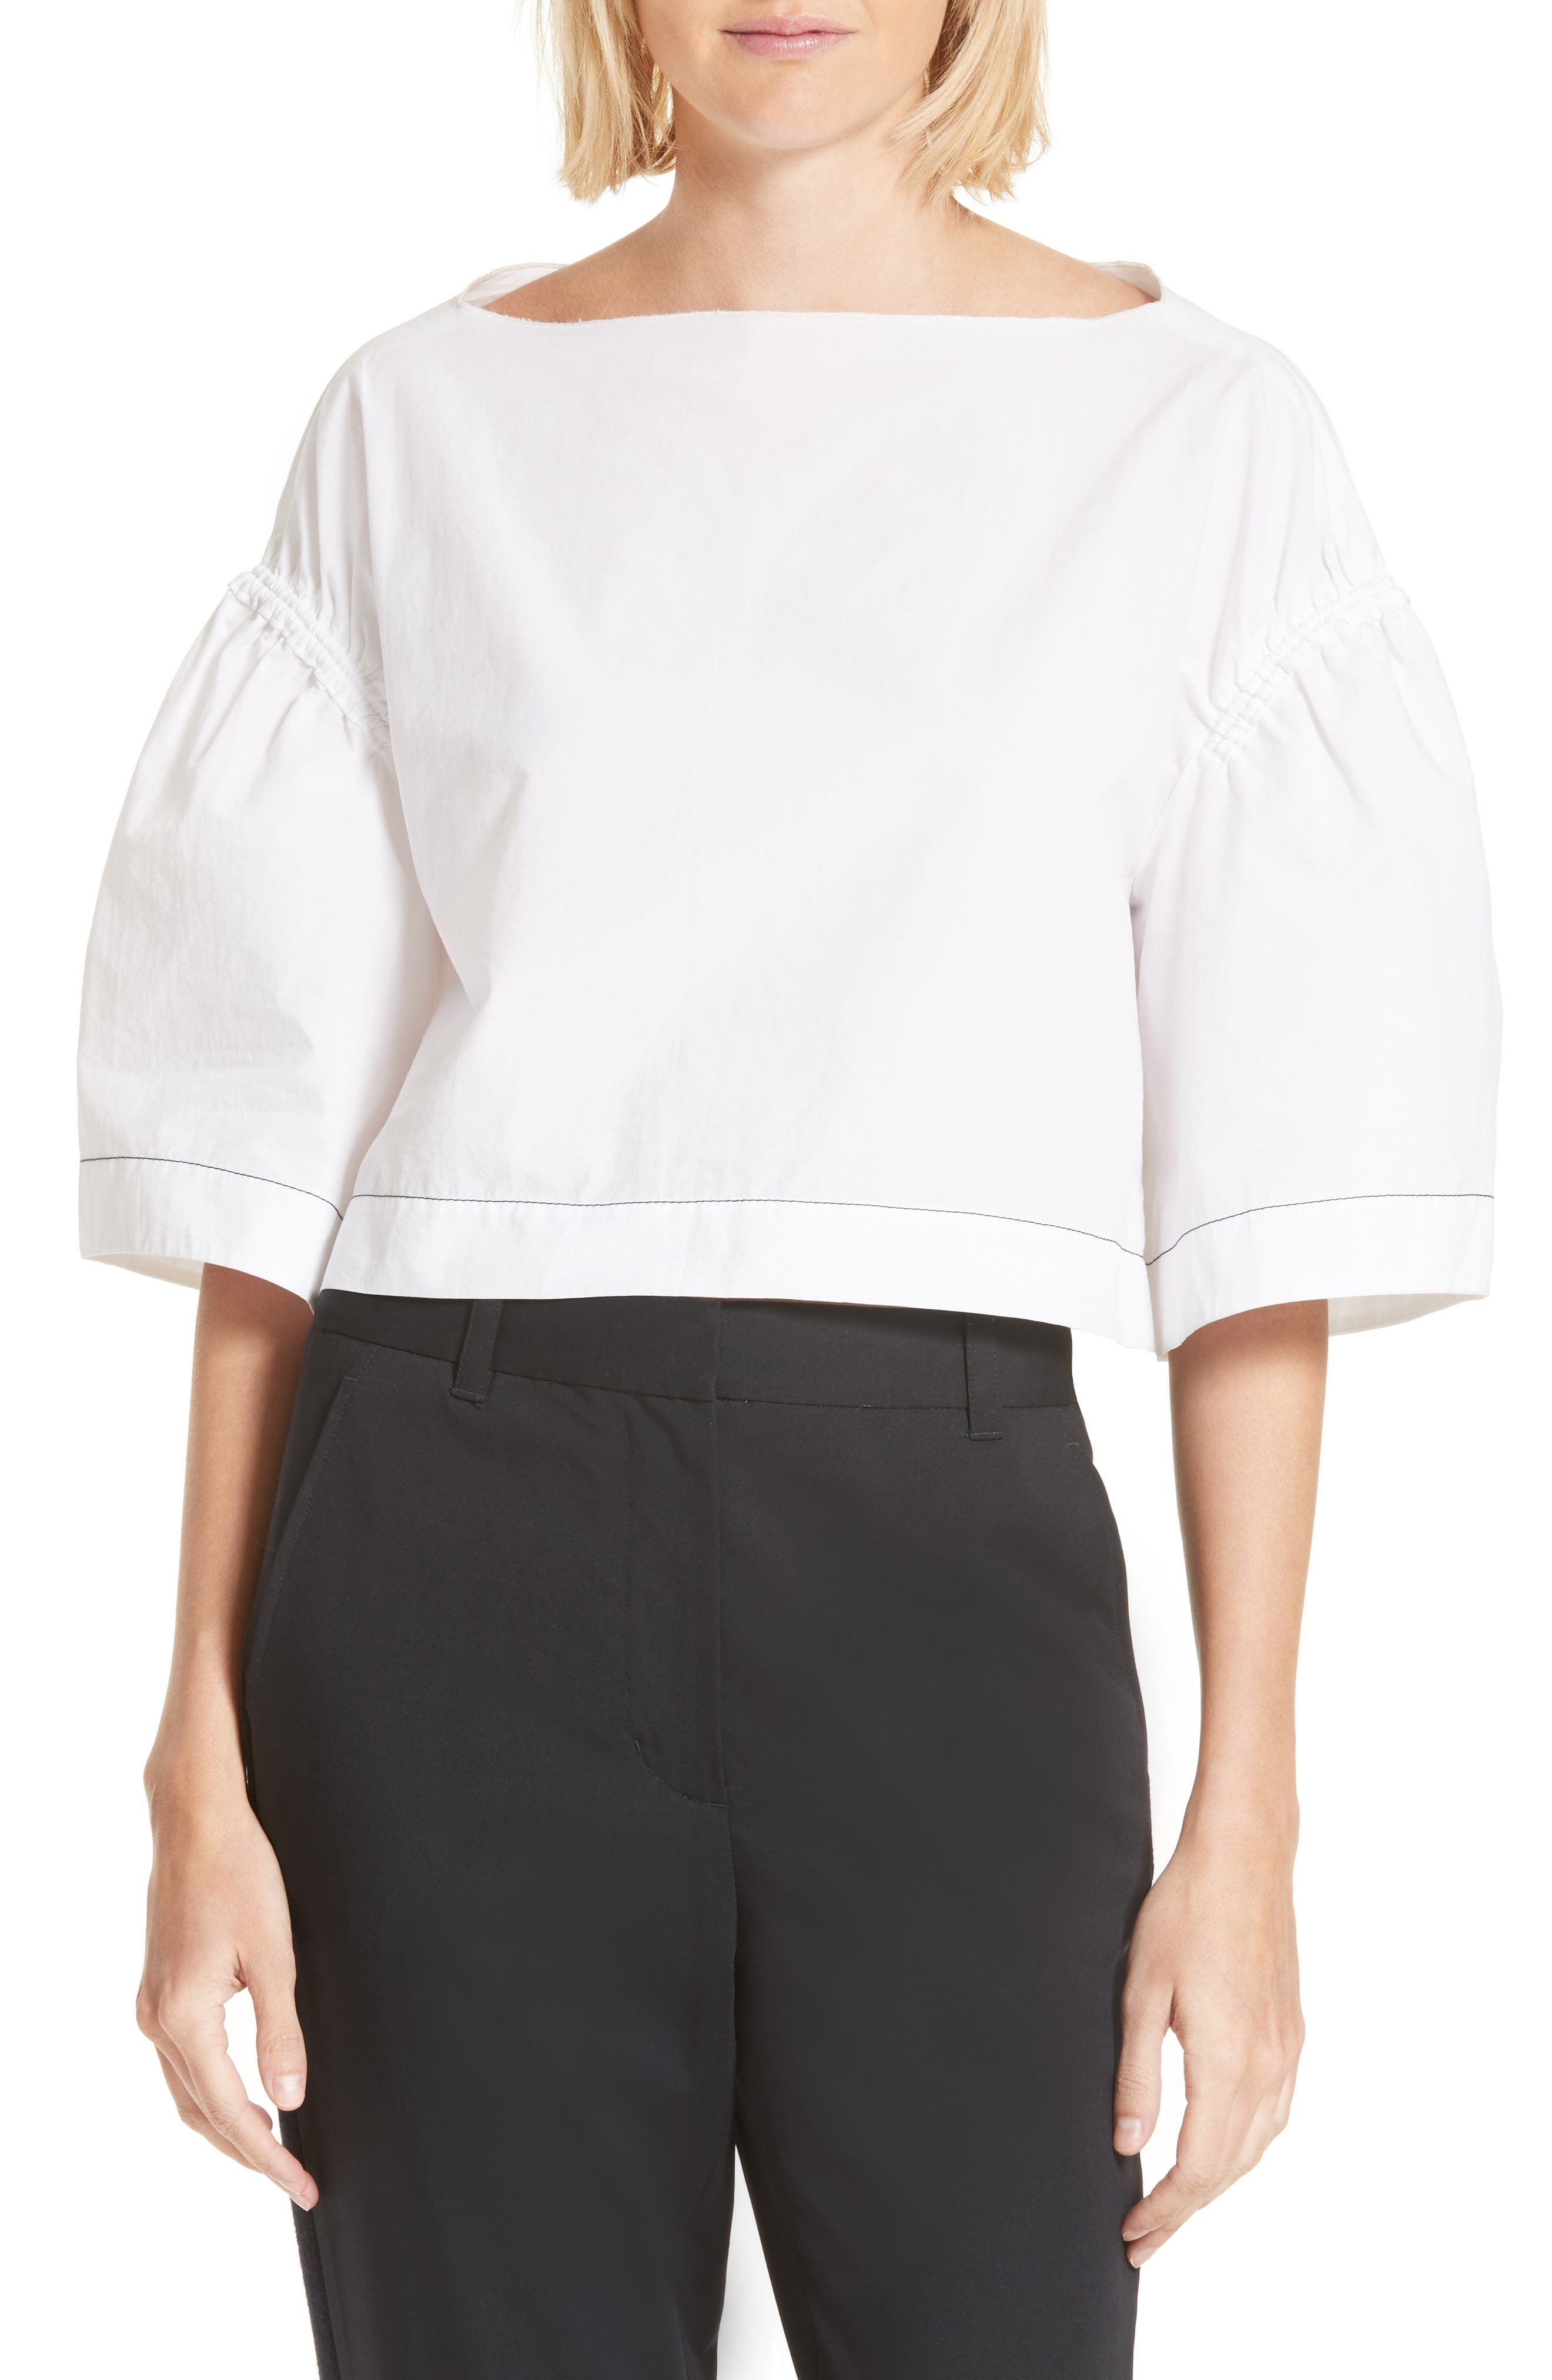 3.1 Phillip Lim Ruched Cotton Top